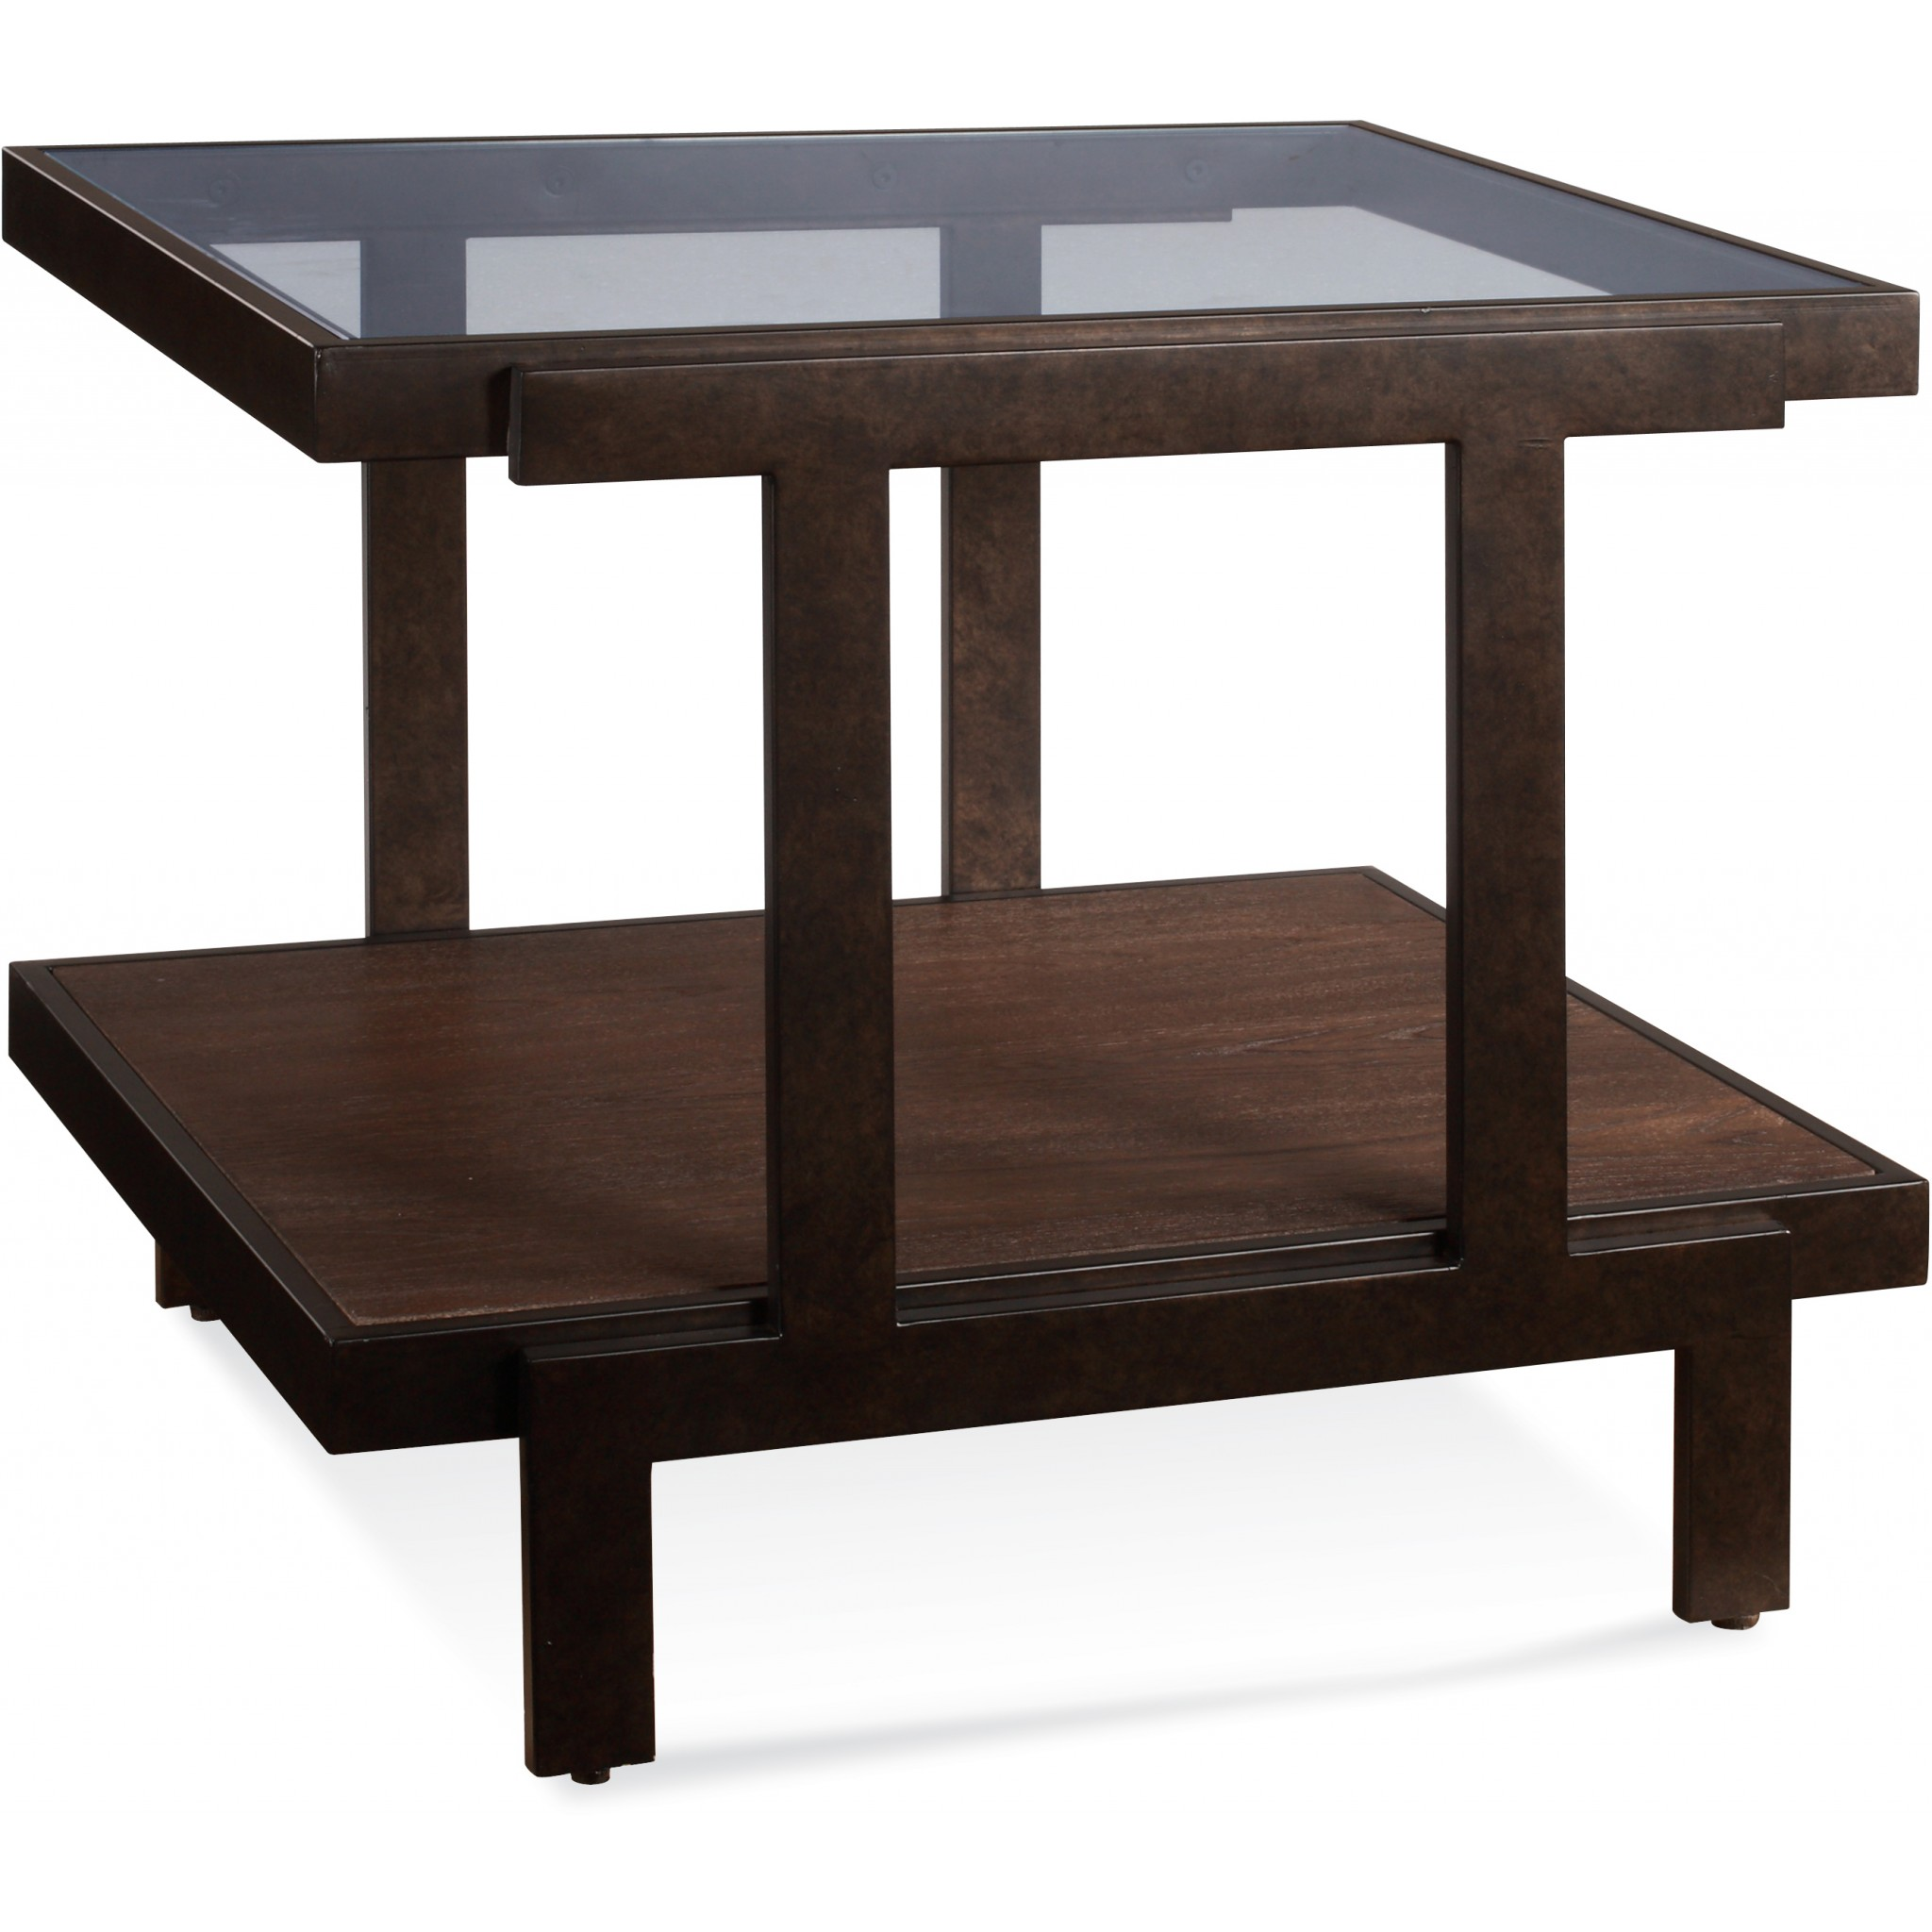 Beasley Rectangle End Table by Bassett Mirror at Alison Craig Home Furnishings